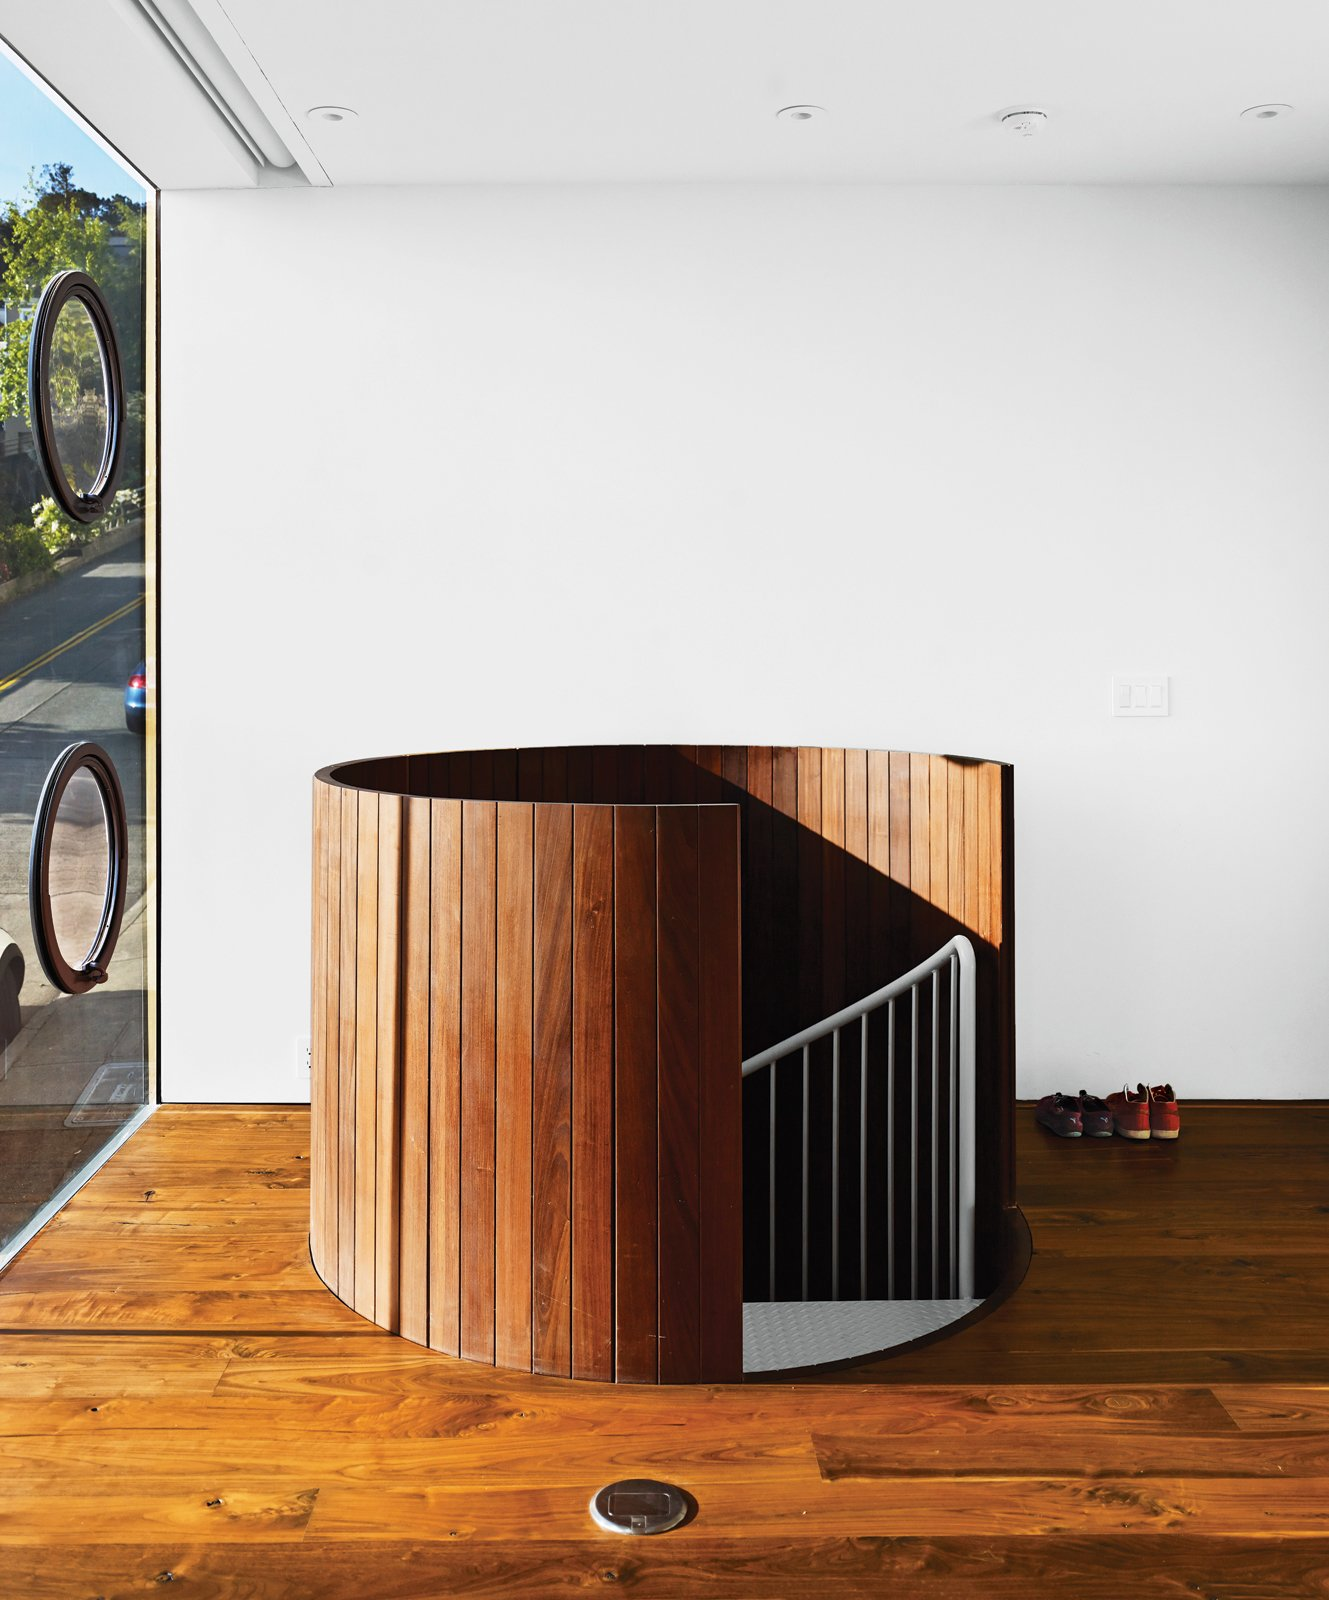 The trip from garage to first floor is through a wood-clad spiral staircase that resembles a giant slatted barrel. Tagged: Staircase, Metal Railing, and Metal Tread.  190+ Best Modern Staircase Ideas by Dwell from Striking Slatted Wood and Glass Home in San Francisco